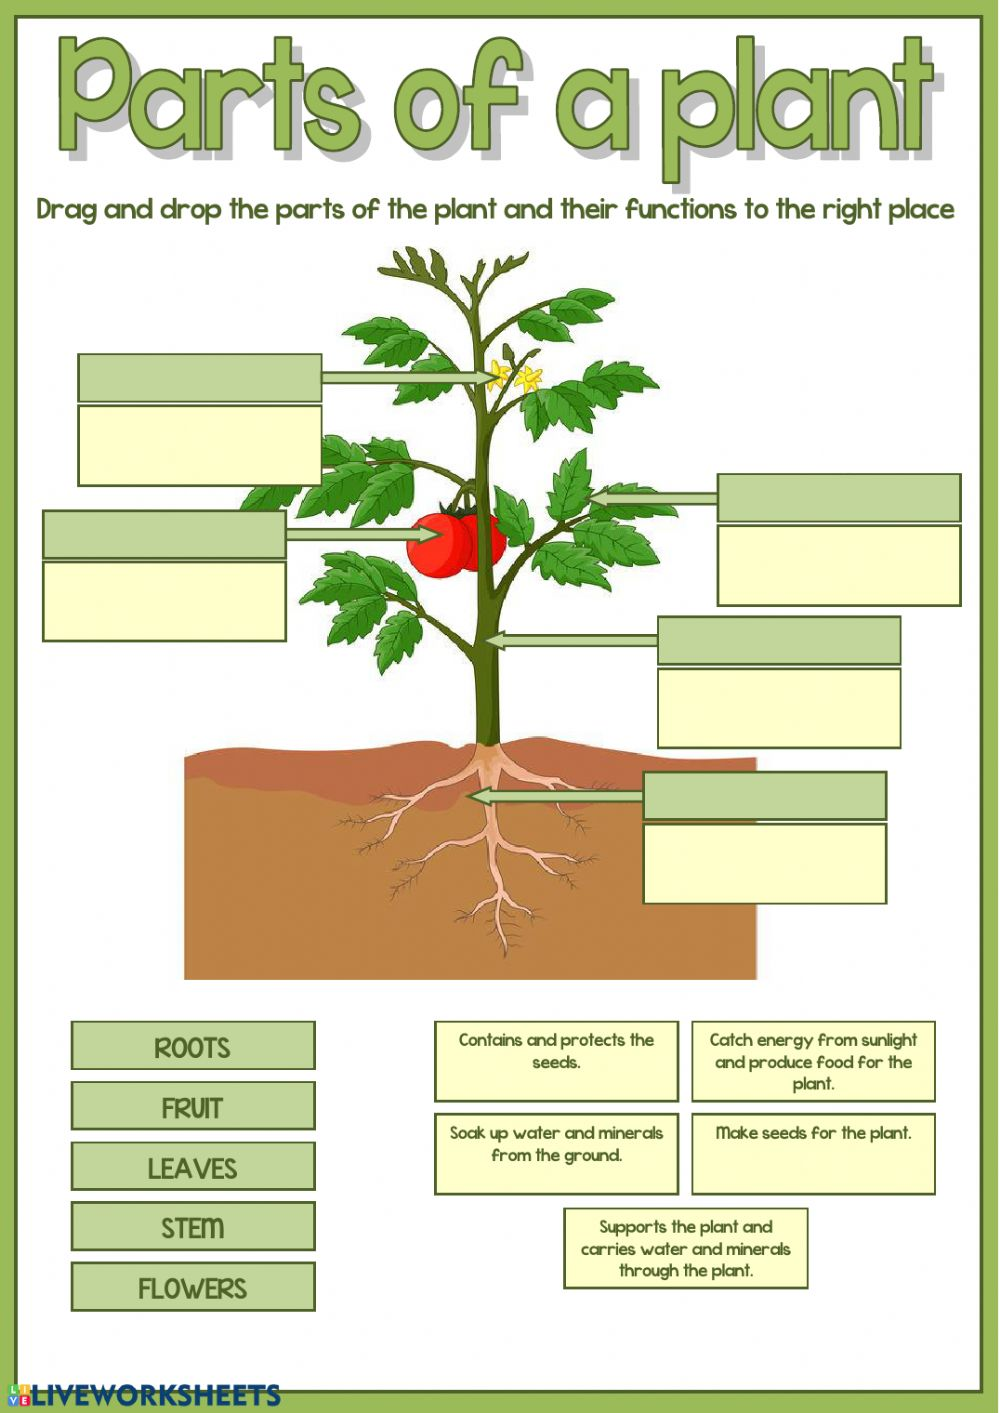 Parts of a plant worksheet